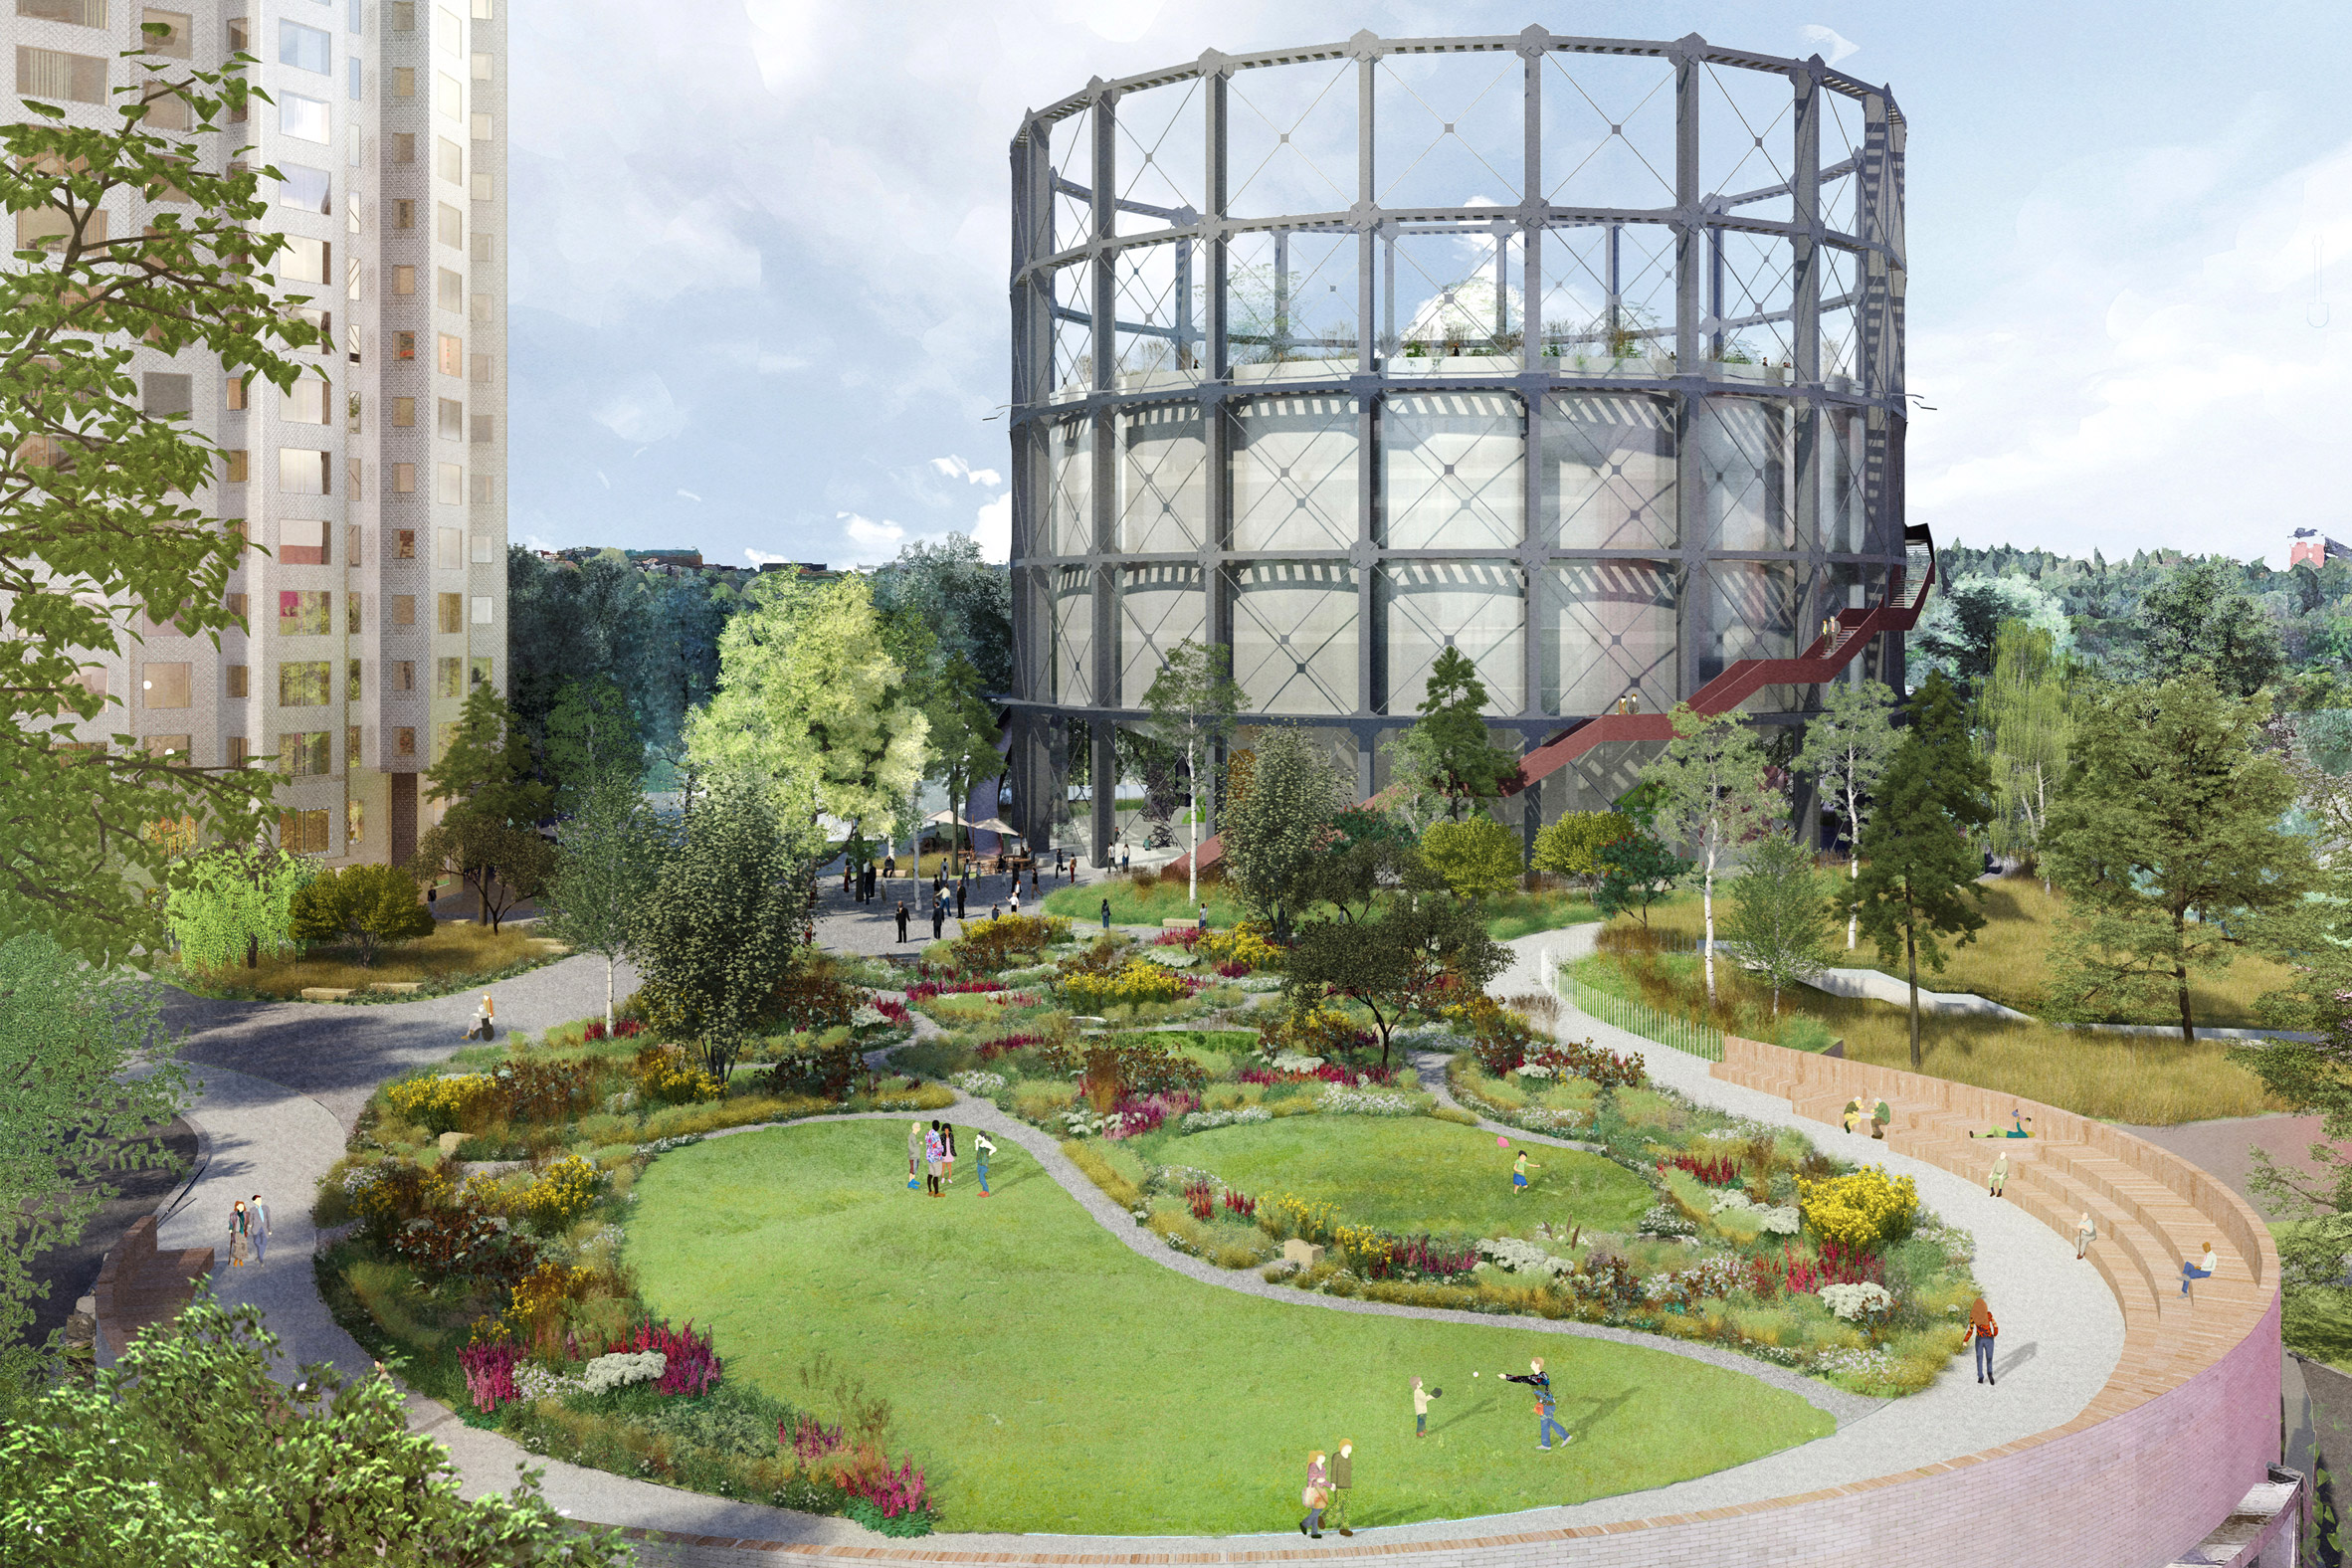 Herzog & de Meuron reveals plans for skyscraper and exhibition hall at Stockholm gasworks